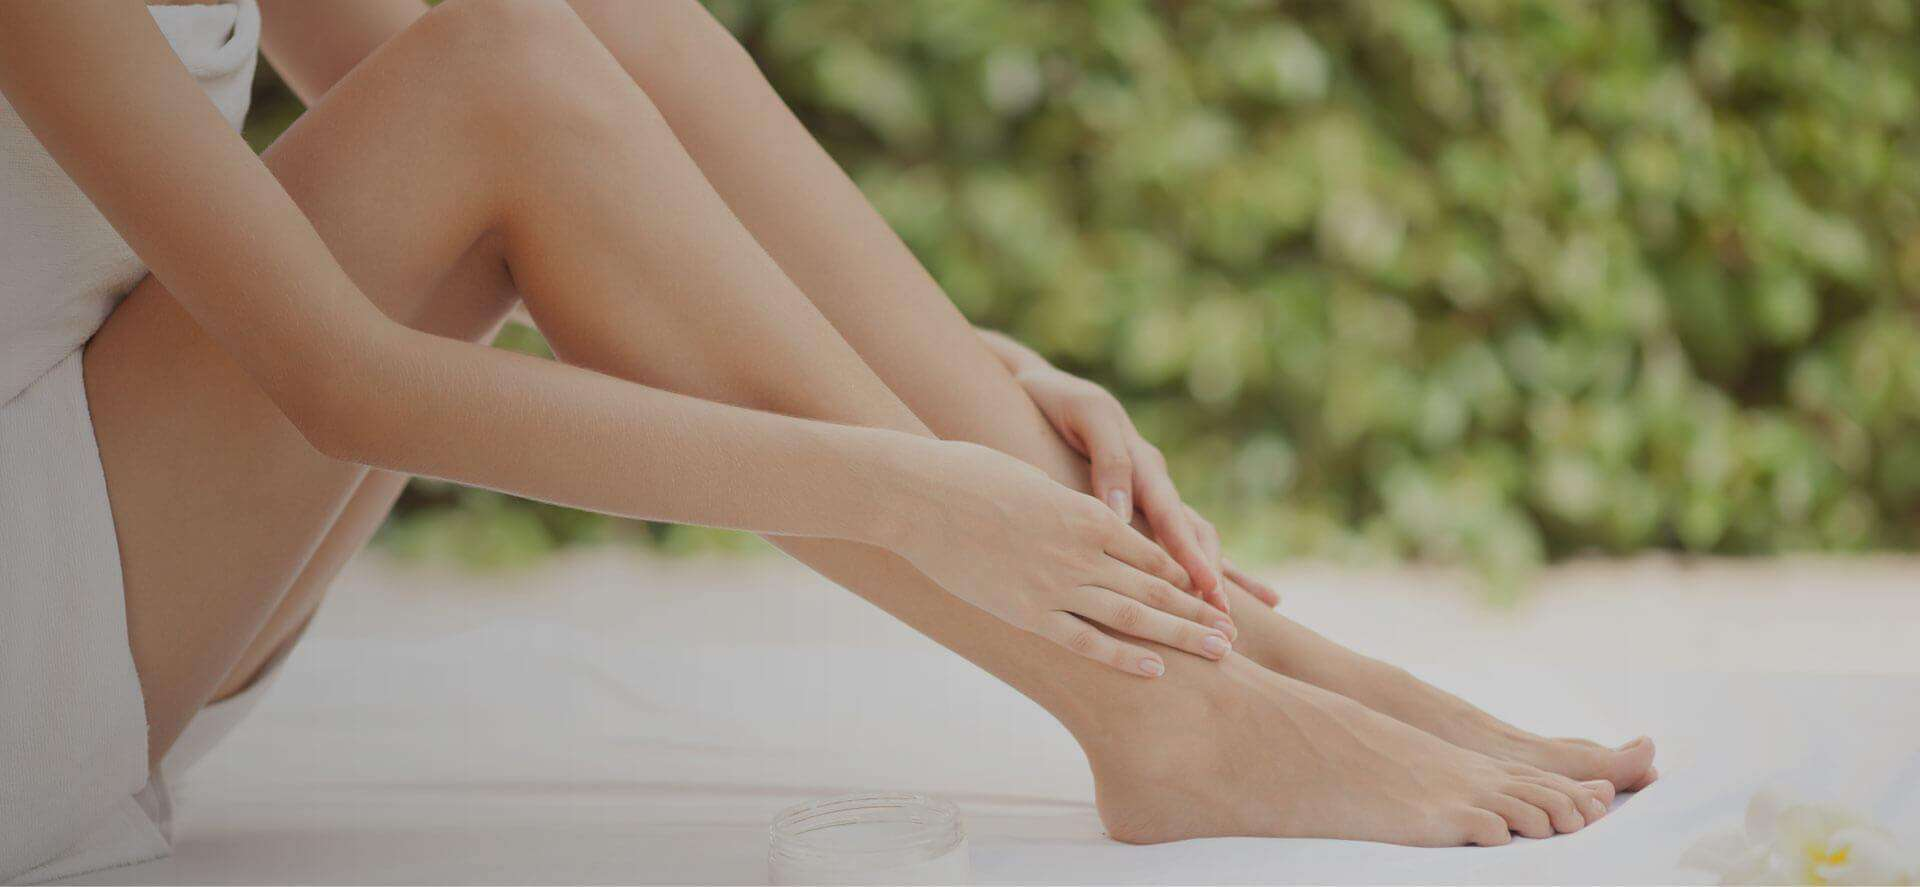 Woman enjoying smooth legs after non-invasive varicose vein treatment.